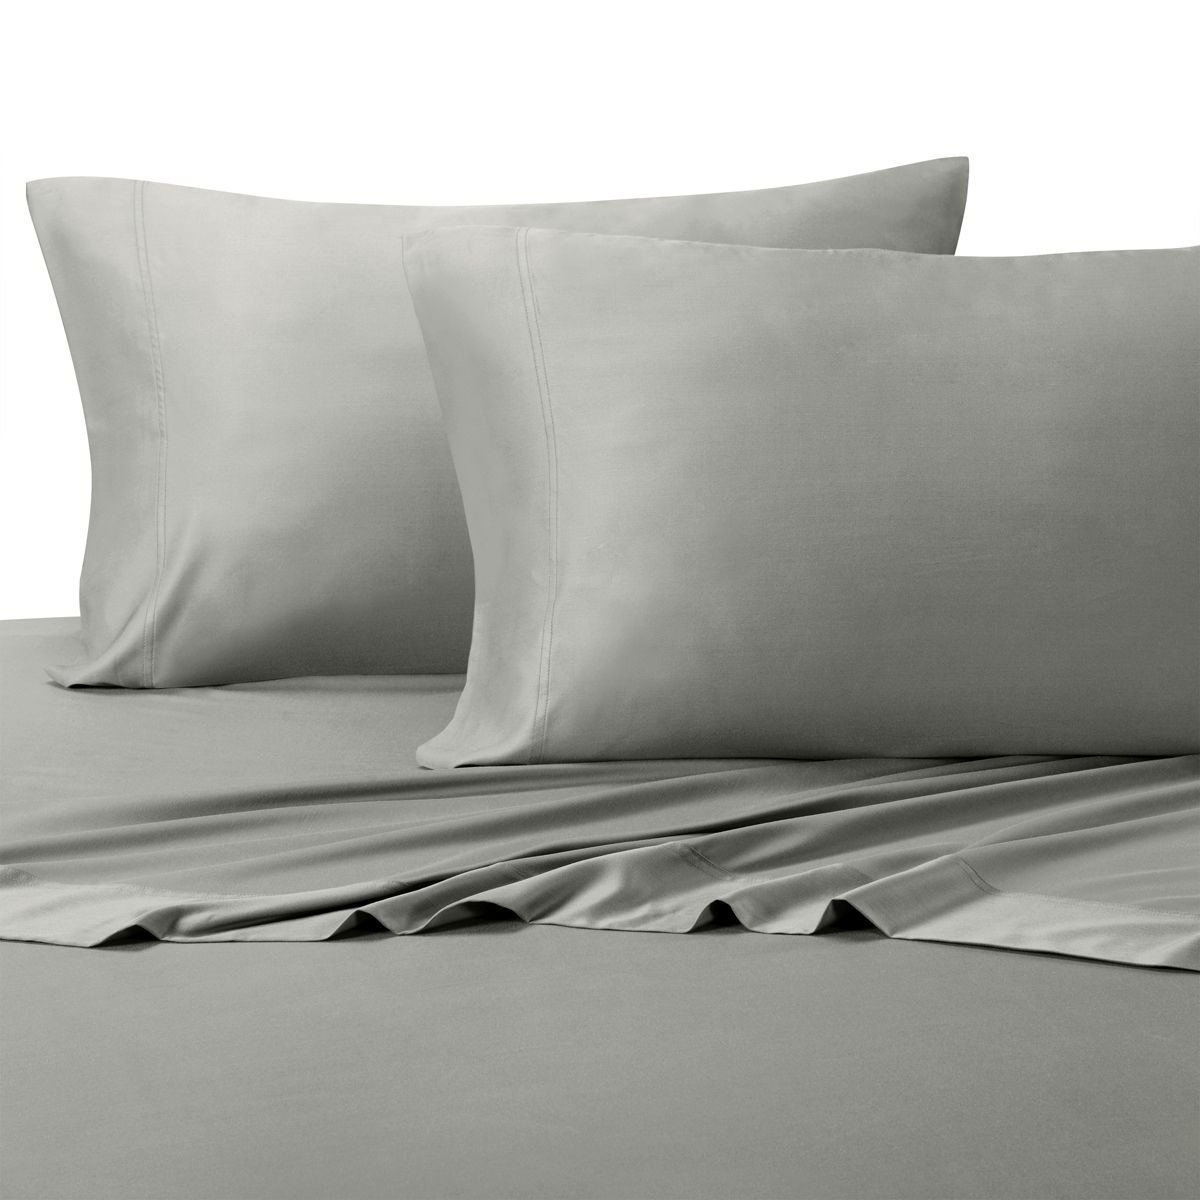 Bamboo Sheets vs. Egyptian Cotton: Why You're Going to Be